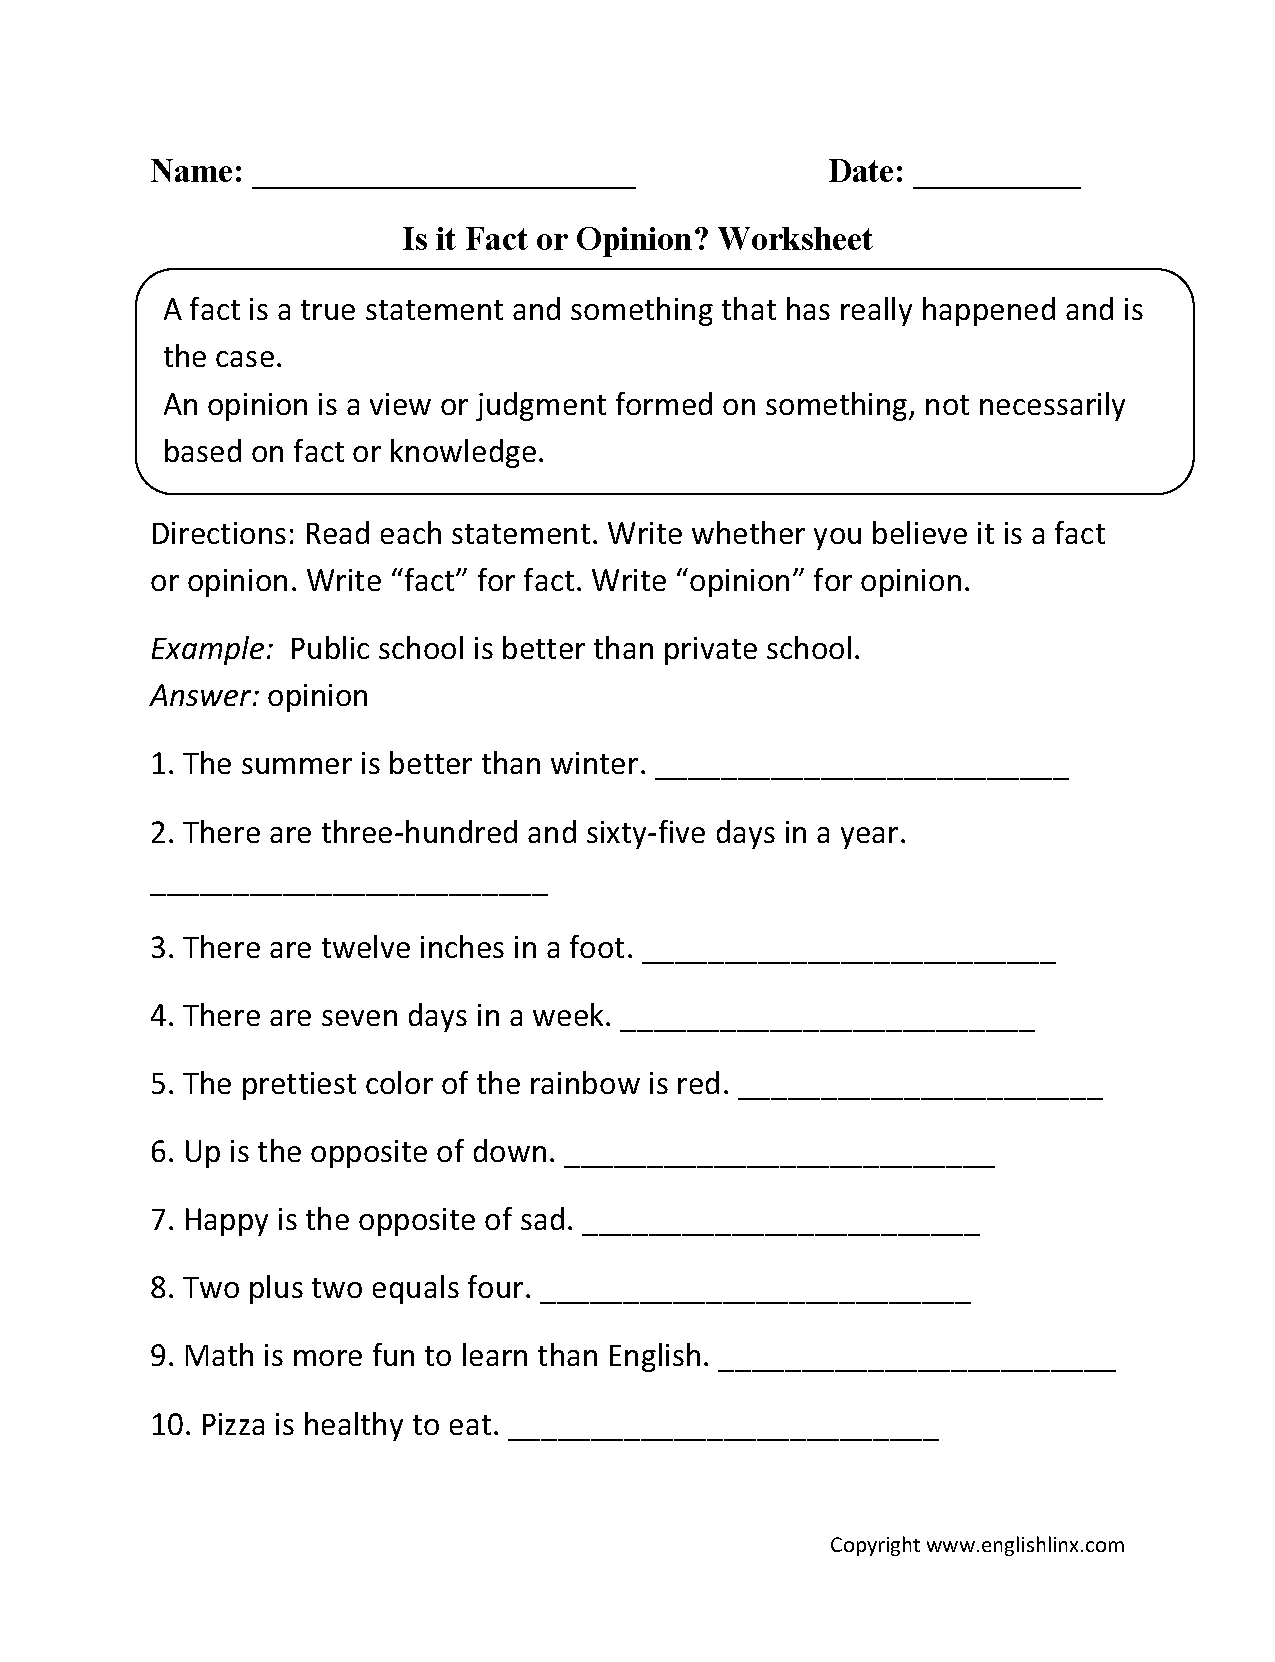 Reading Worksheets – Fact or Opinion Worksheet